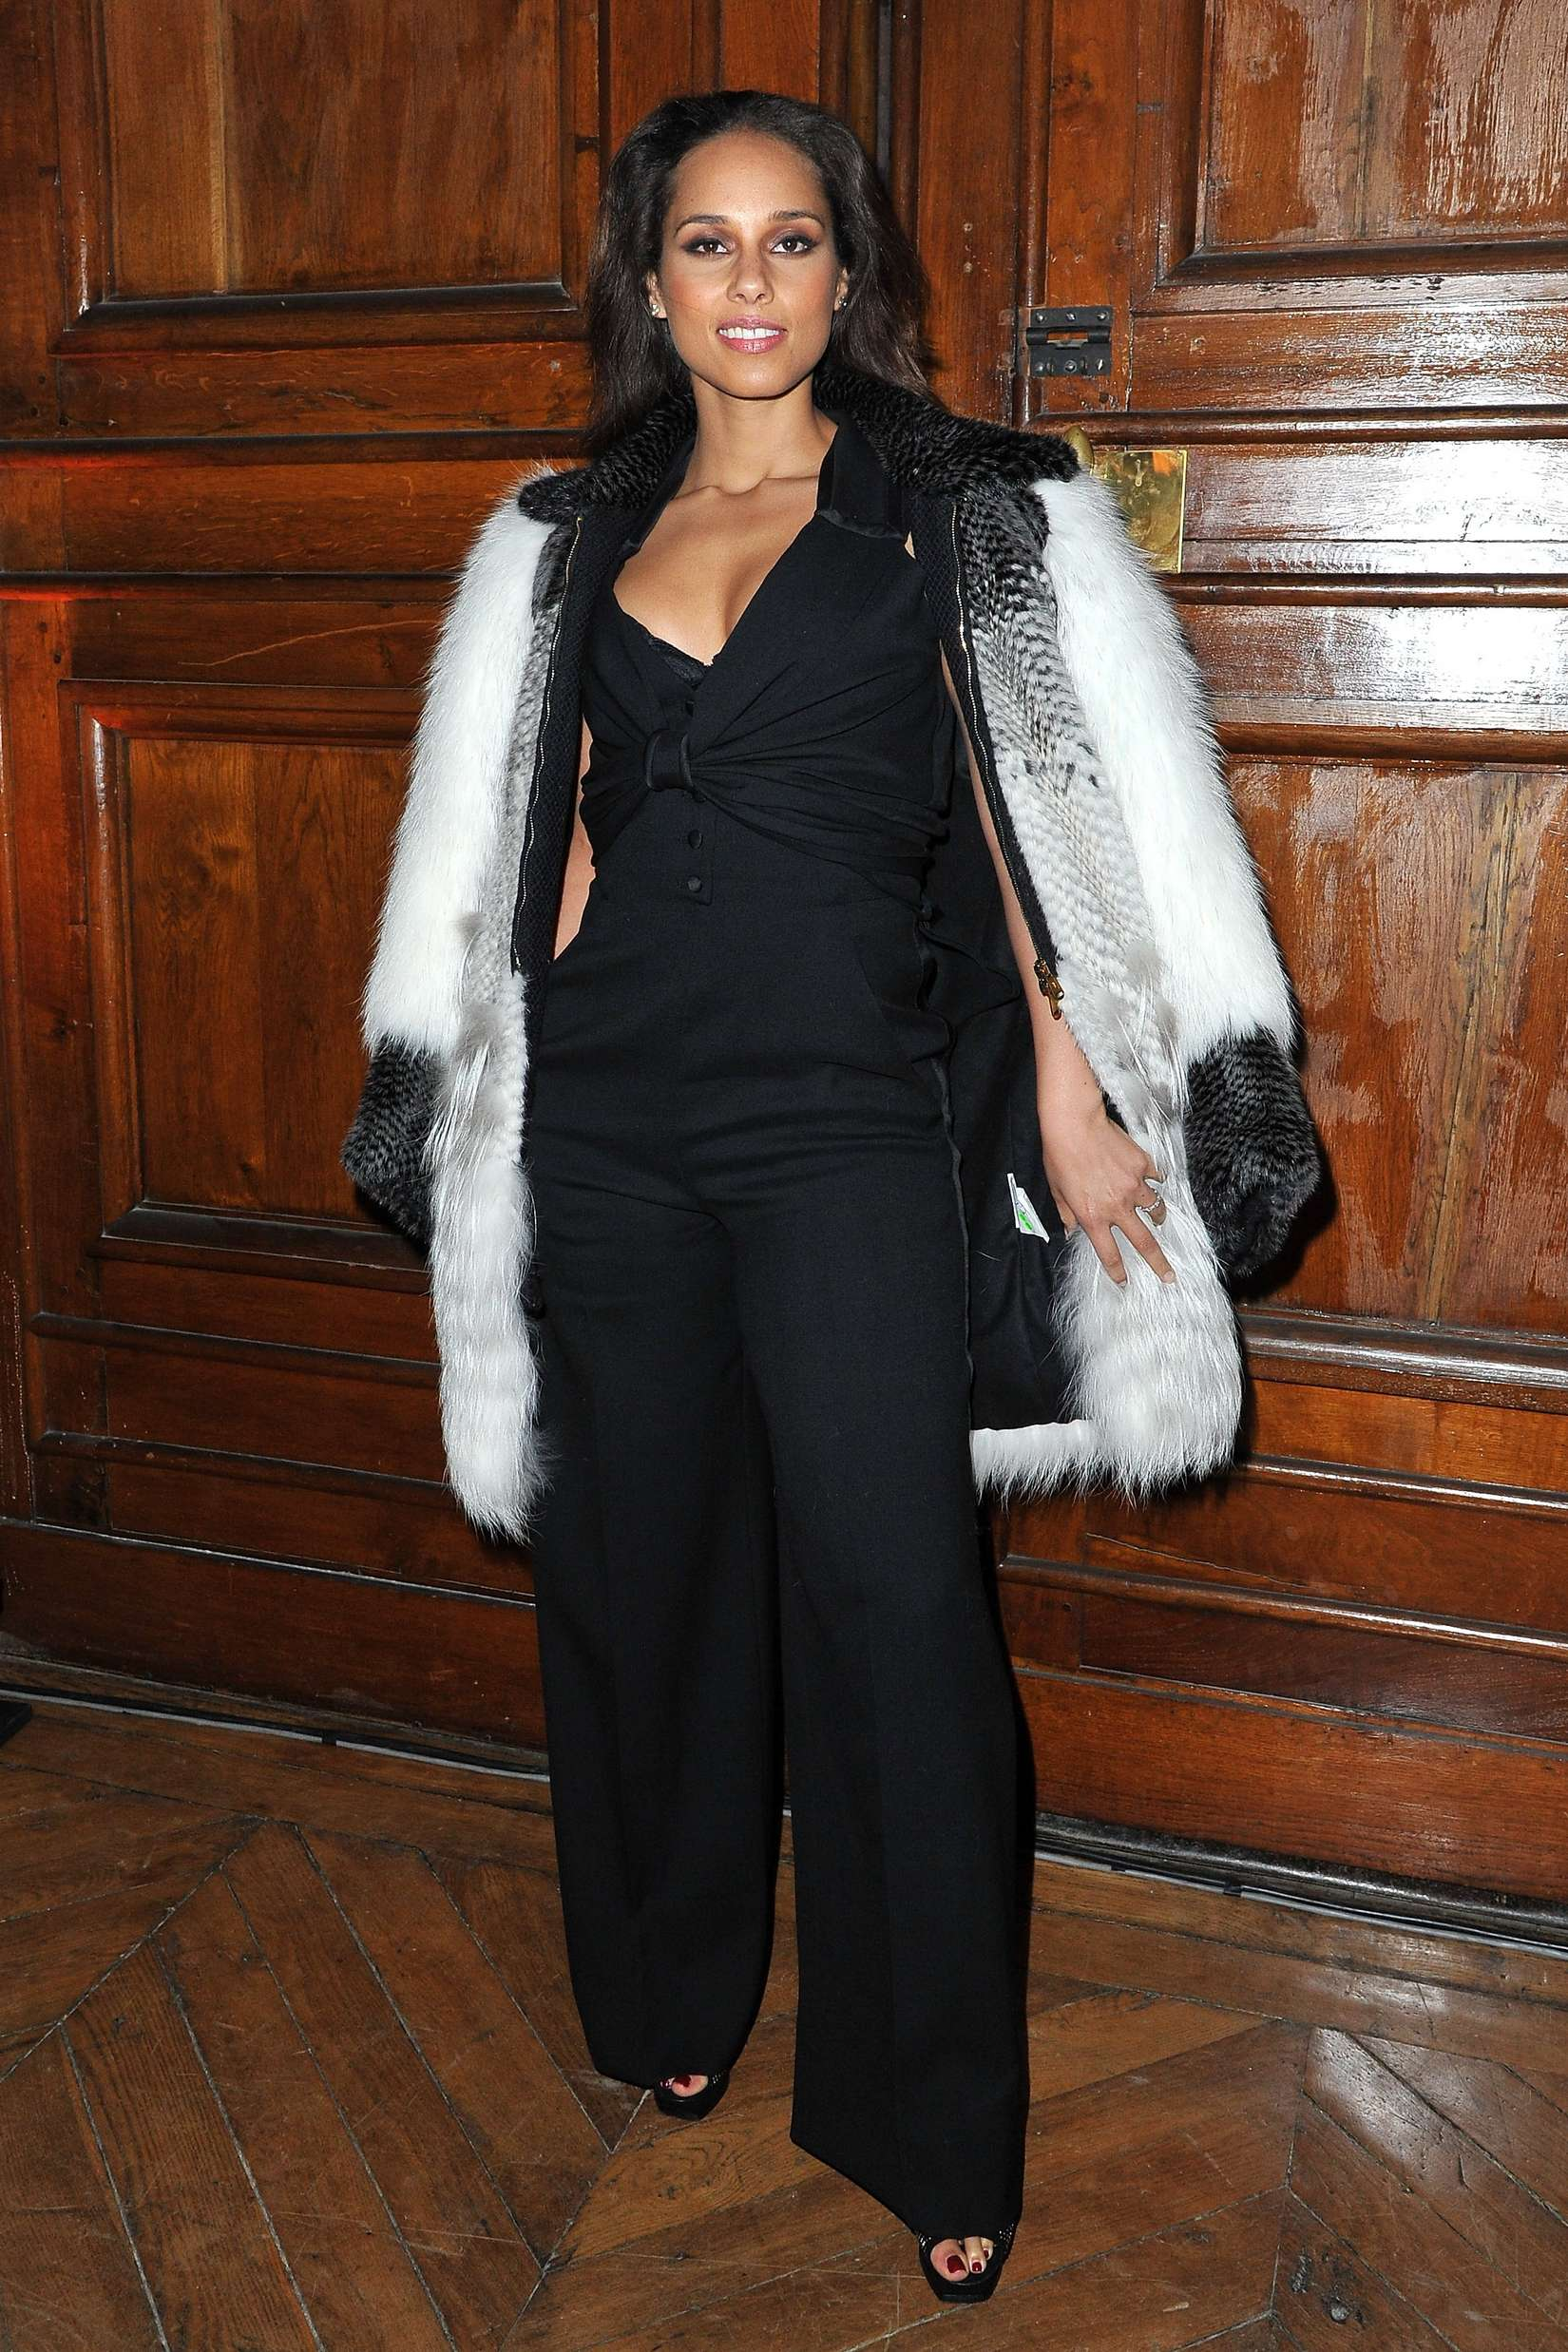 Alicia Keys Yves Saint-Laurent Ready-to-Wear Fall/Winter Fashion Show